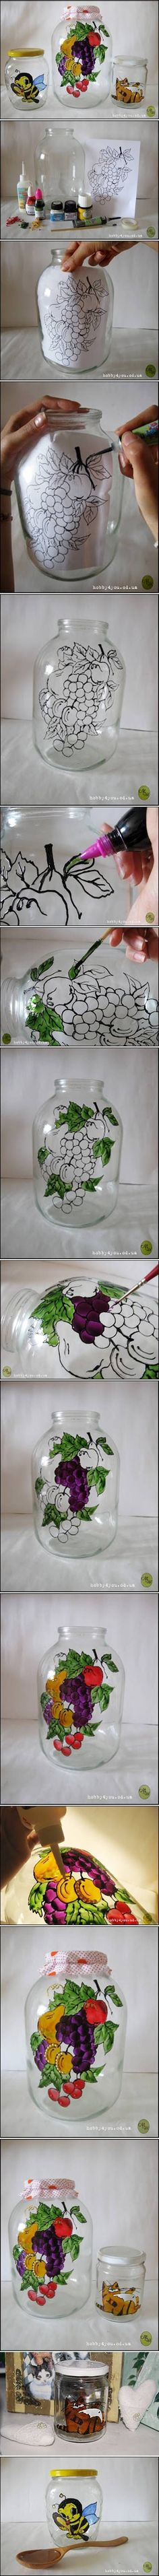 DIY Jar Art